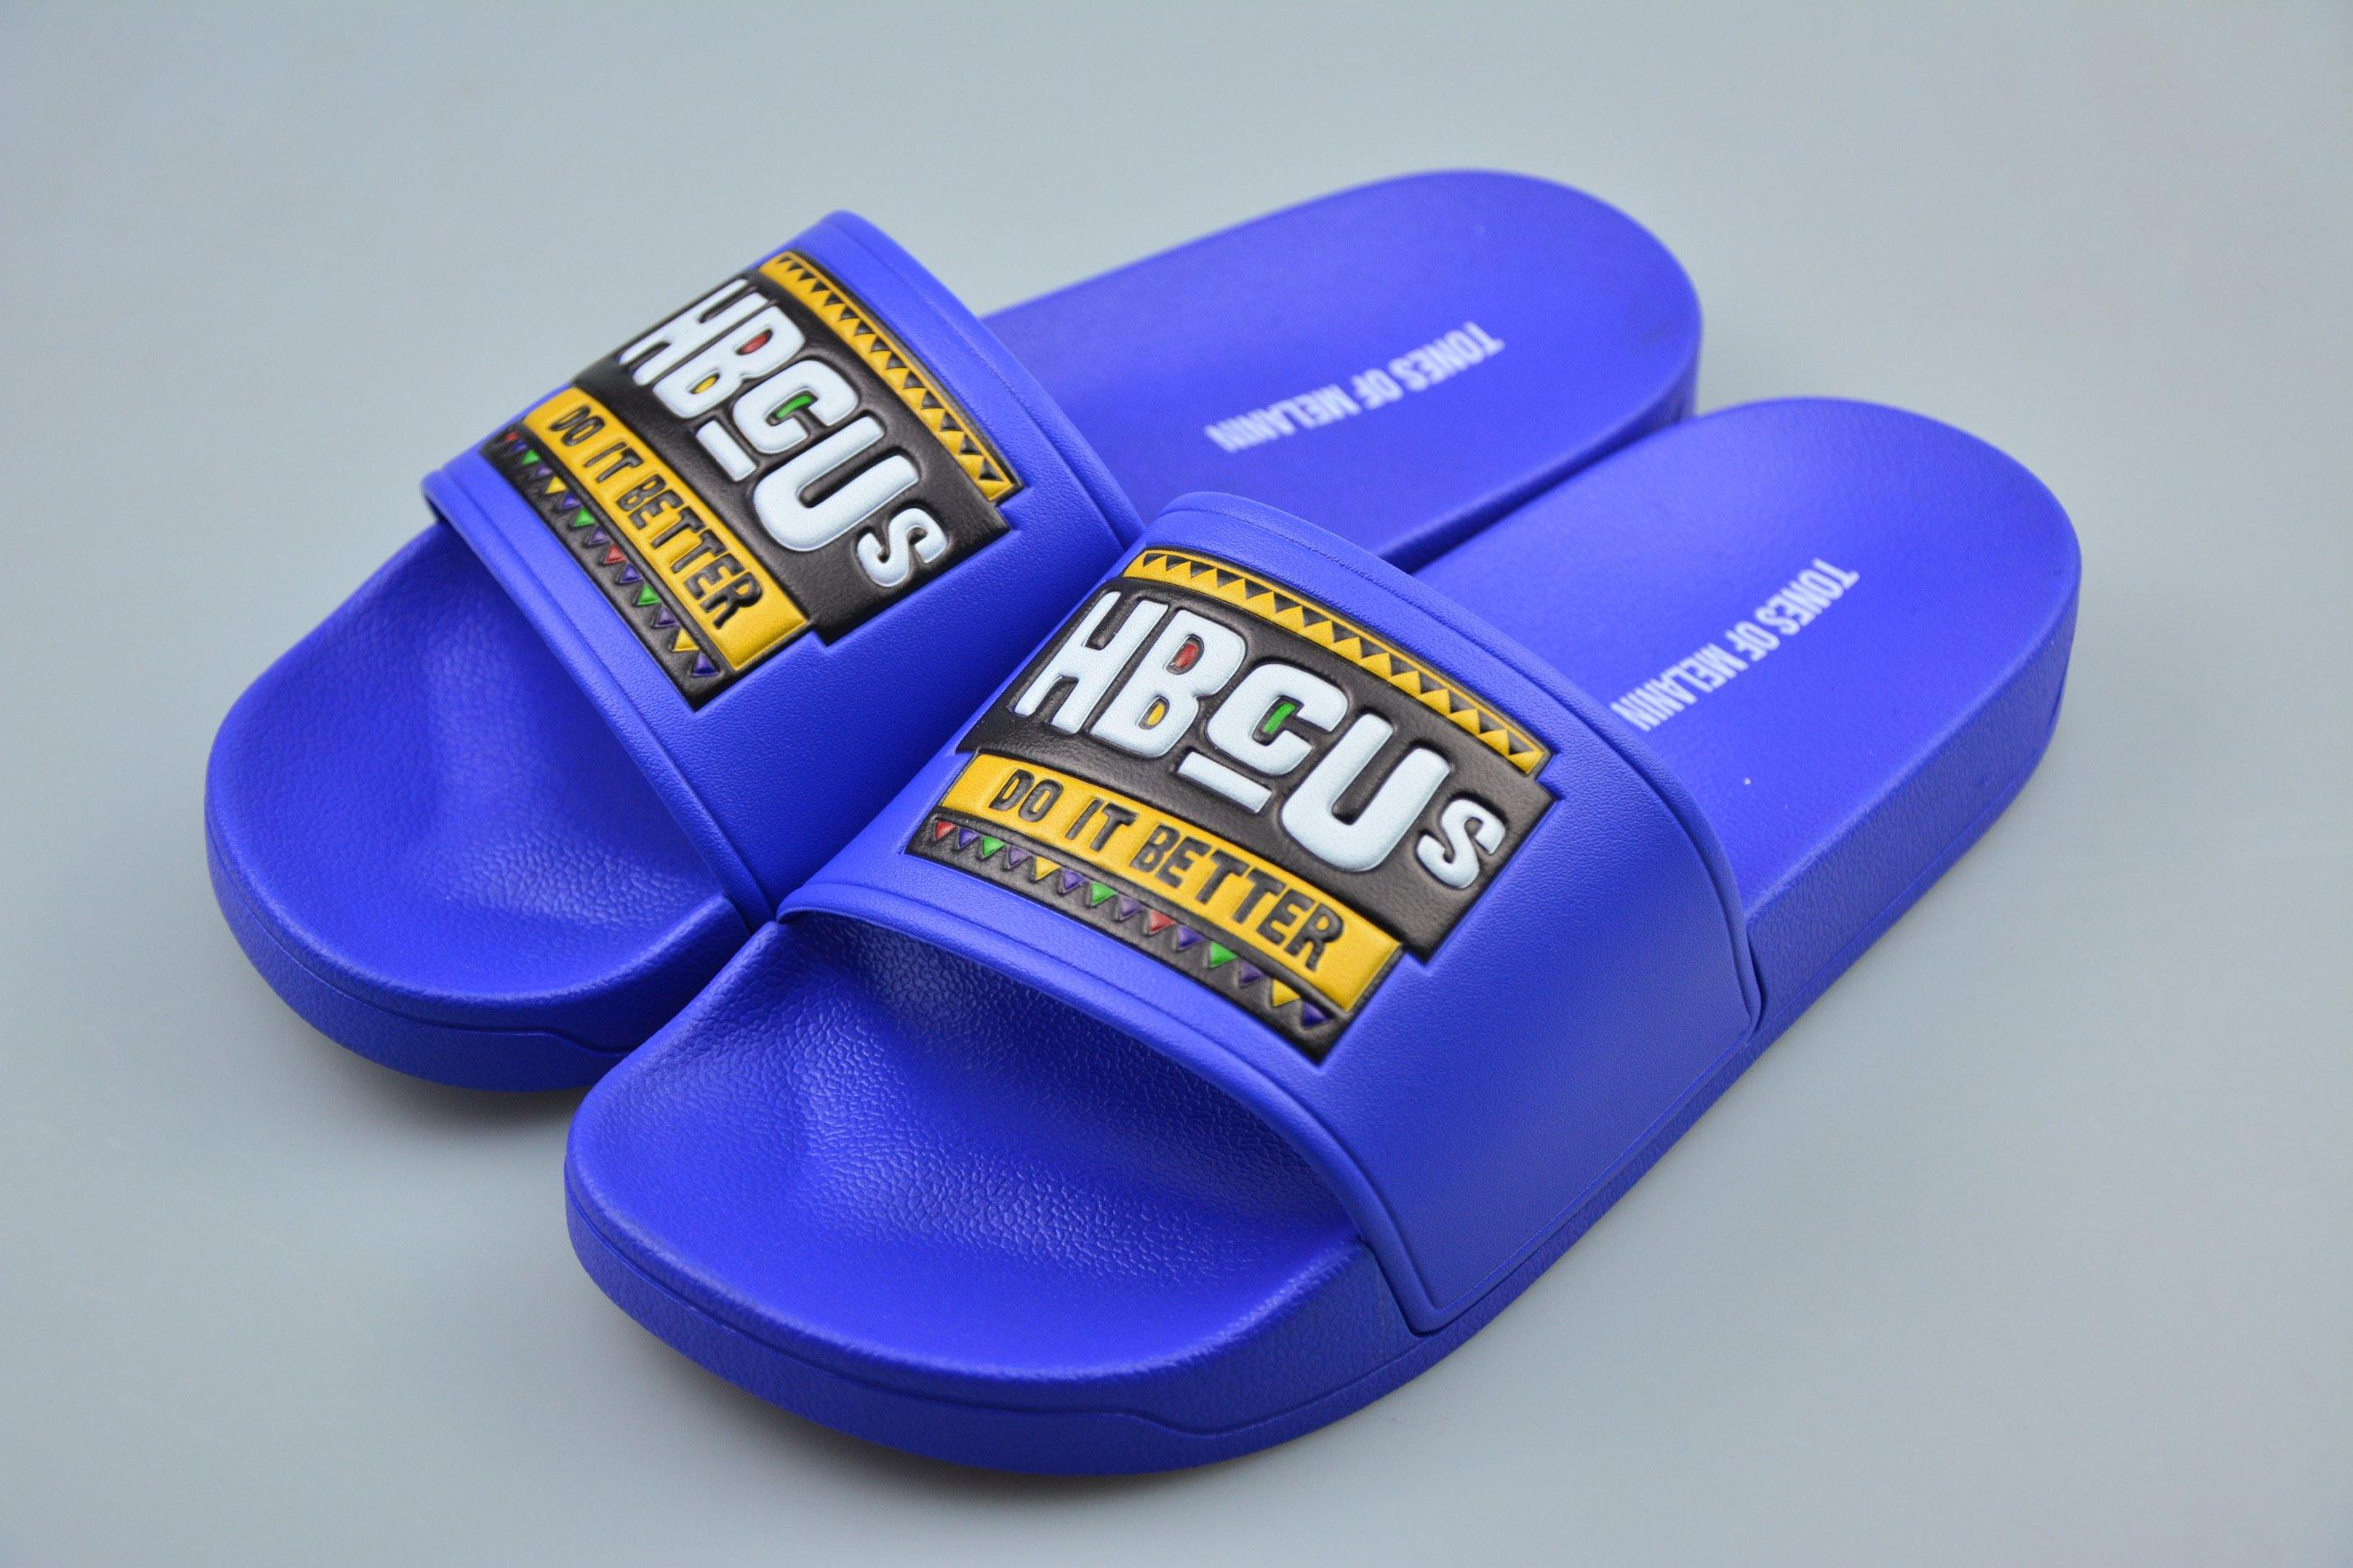 Blue HBCUs do it better slides(PREORDER PLEASE ALLOW 4-5 WEEKS FOR SHIPPING)